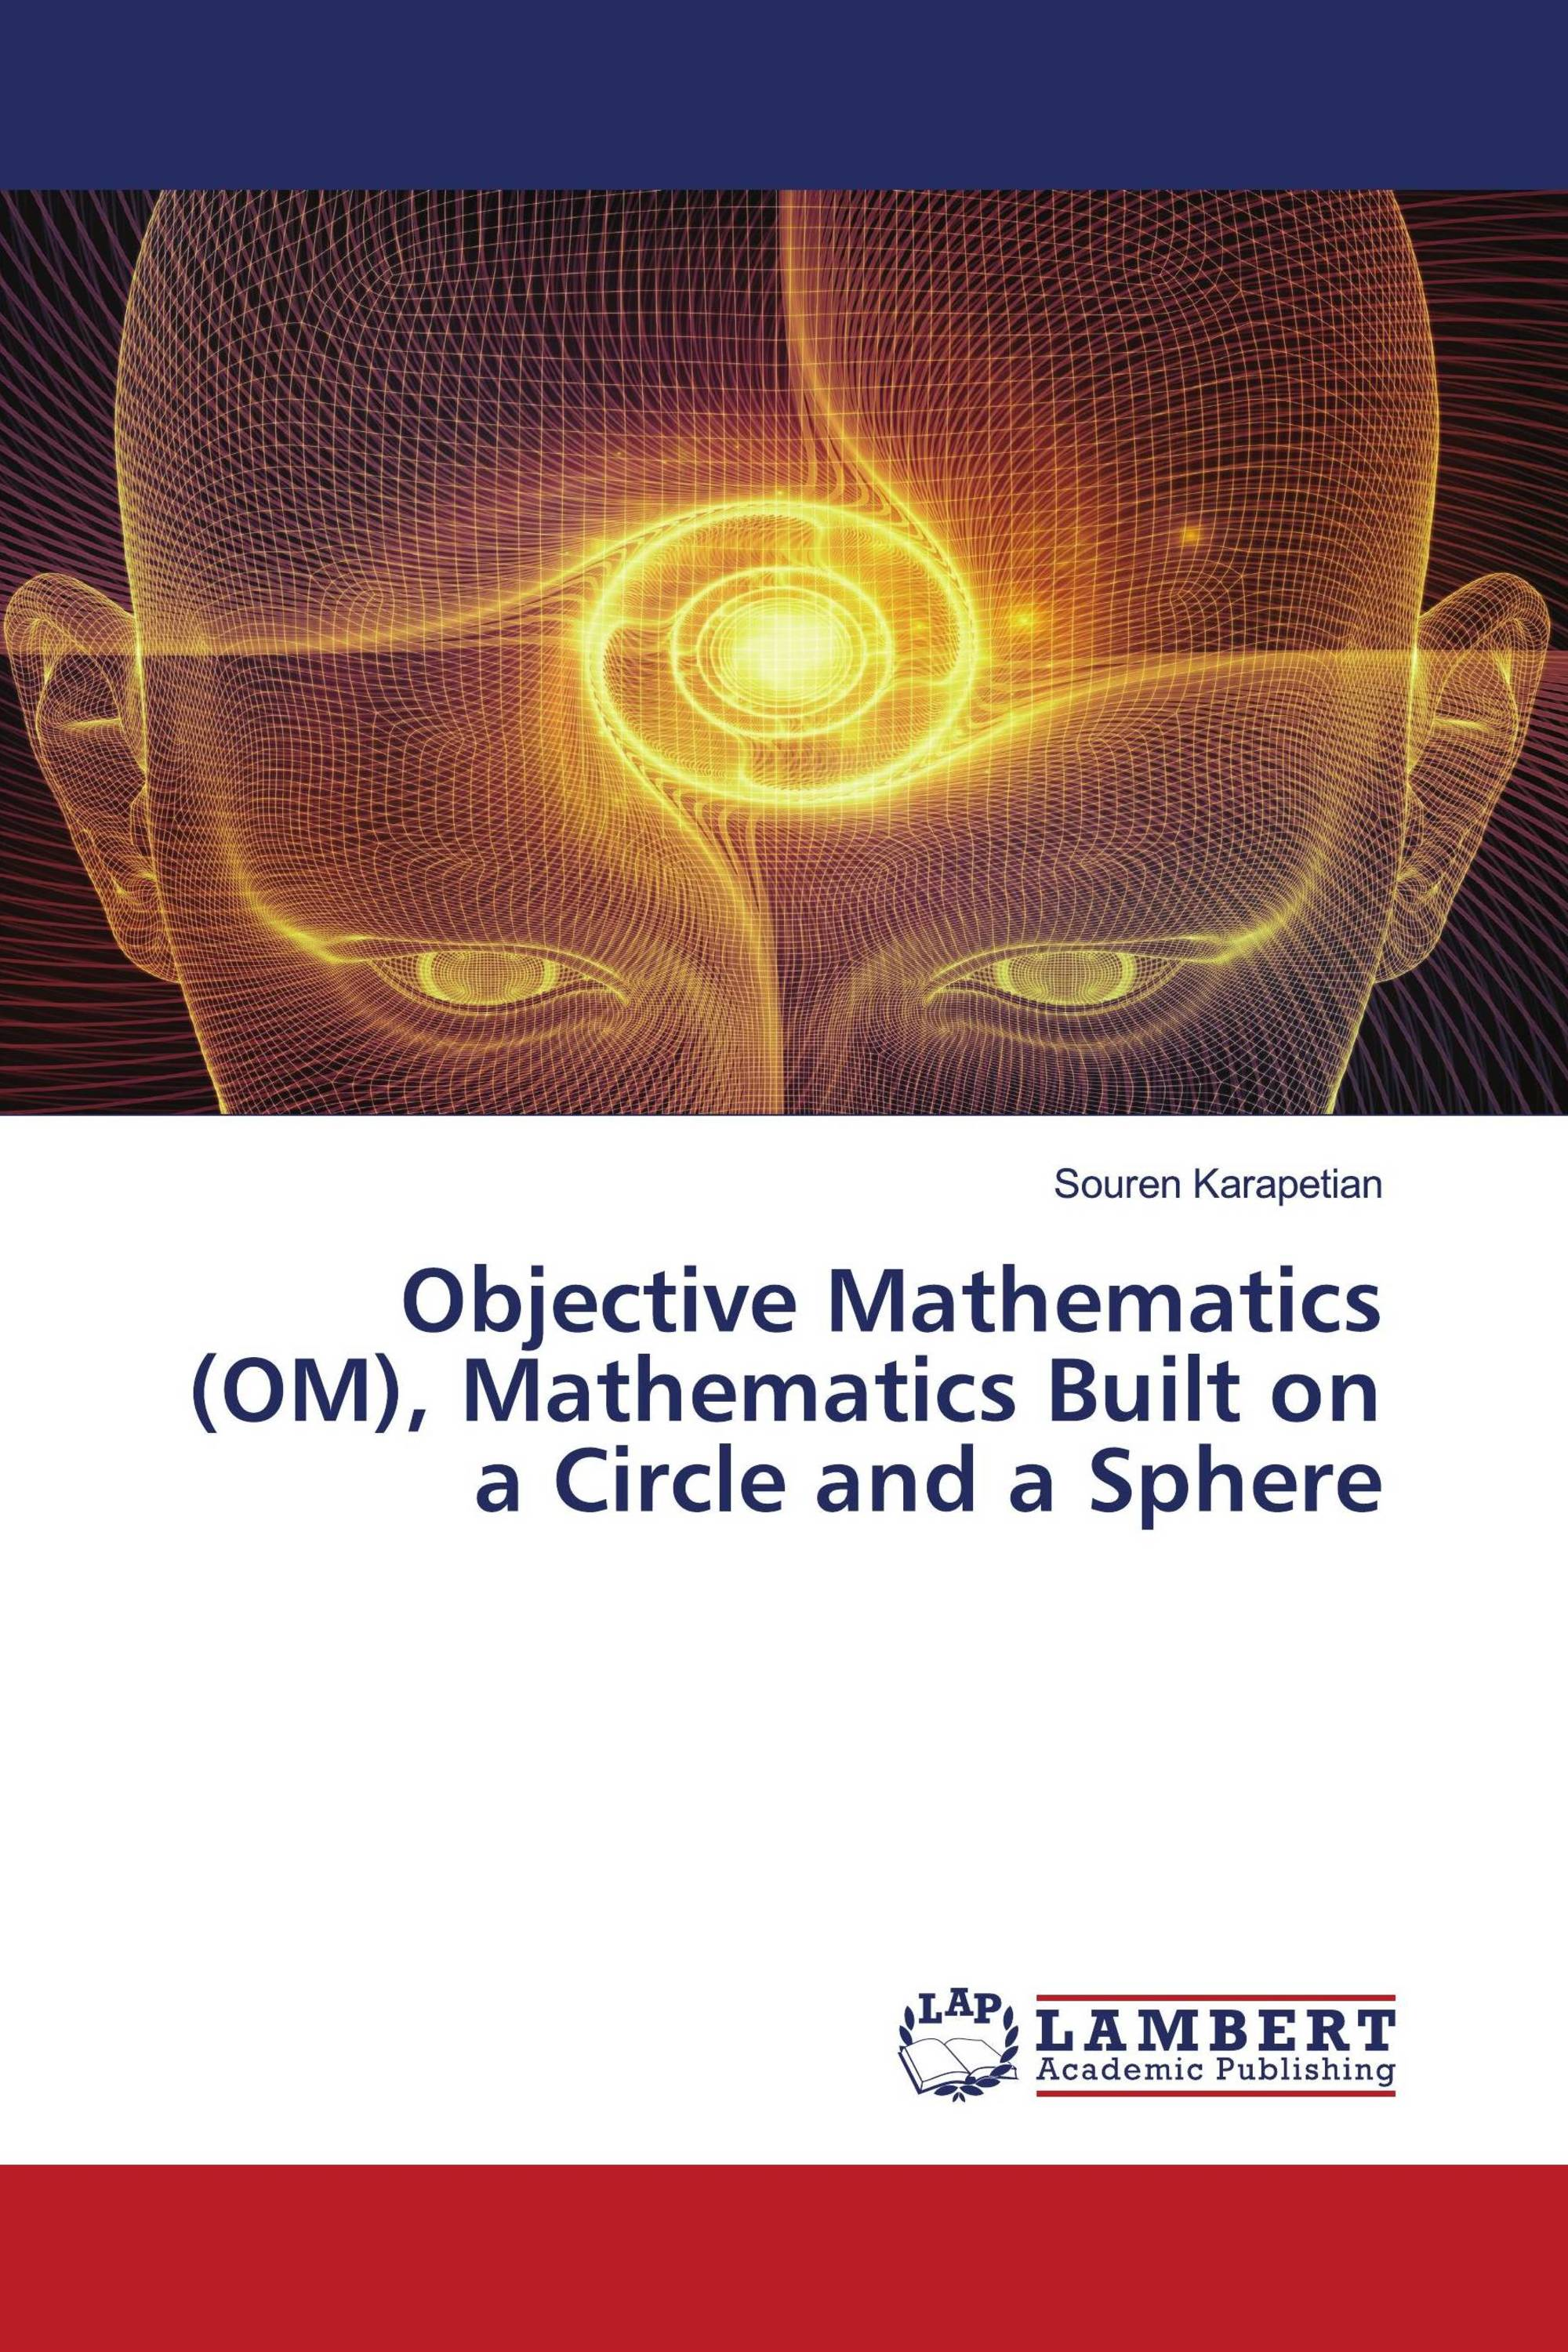 Objective Mathematics (OM), Mathematics Built on a Circle and a Sphere